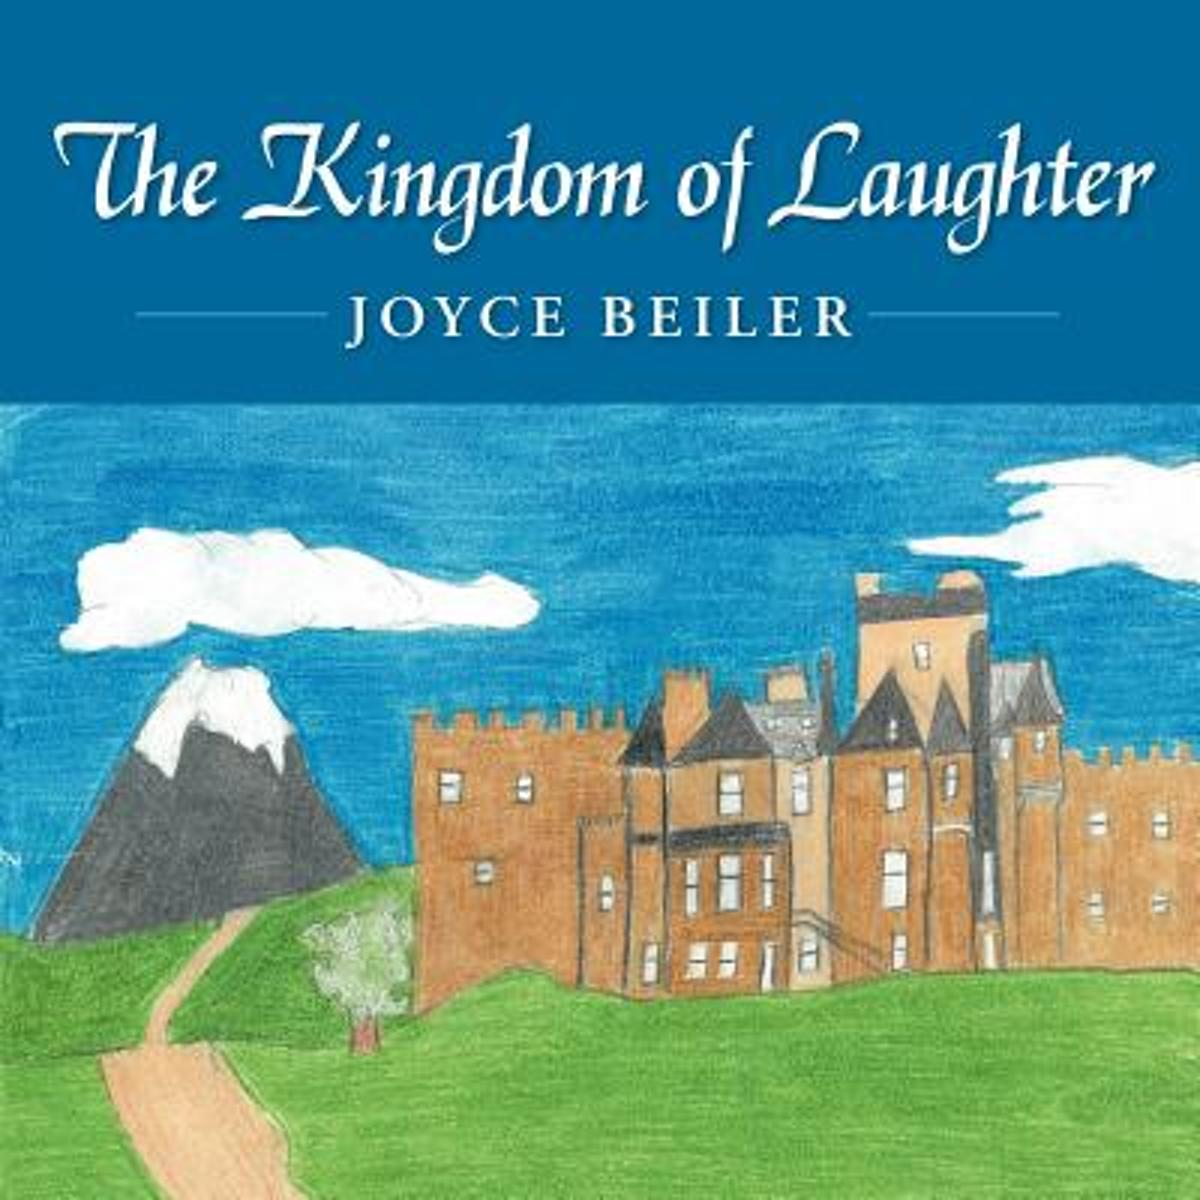 The Kingdom of Laughter